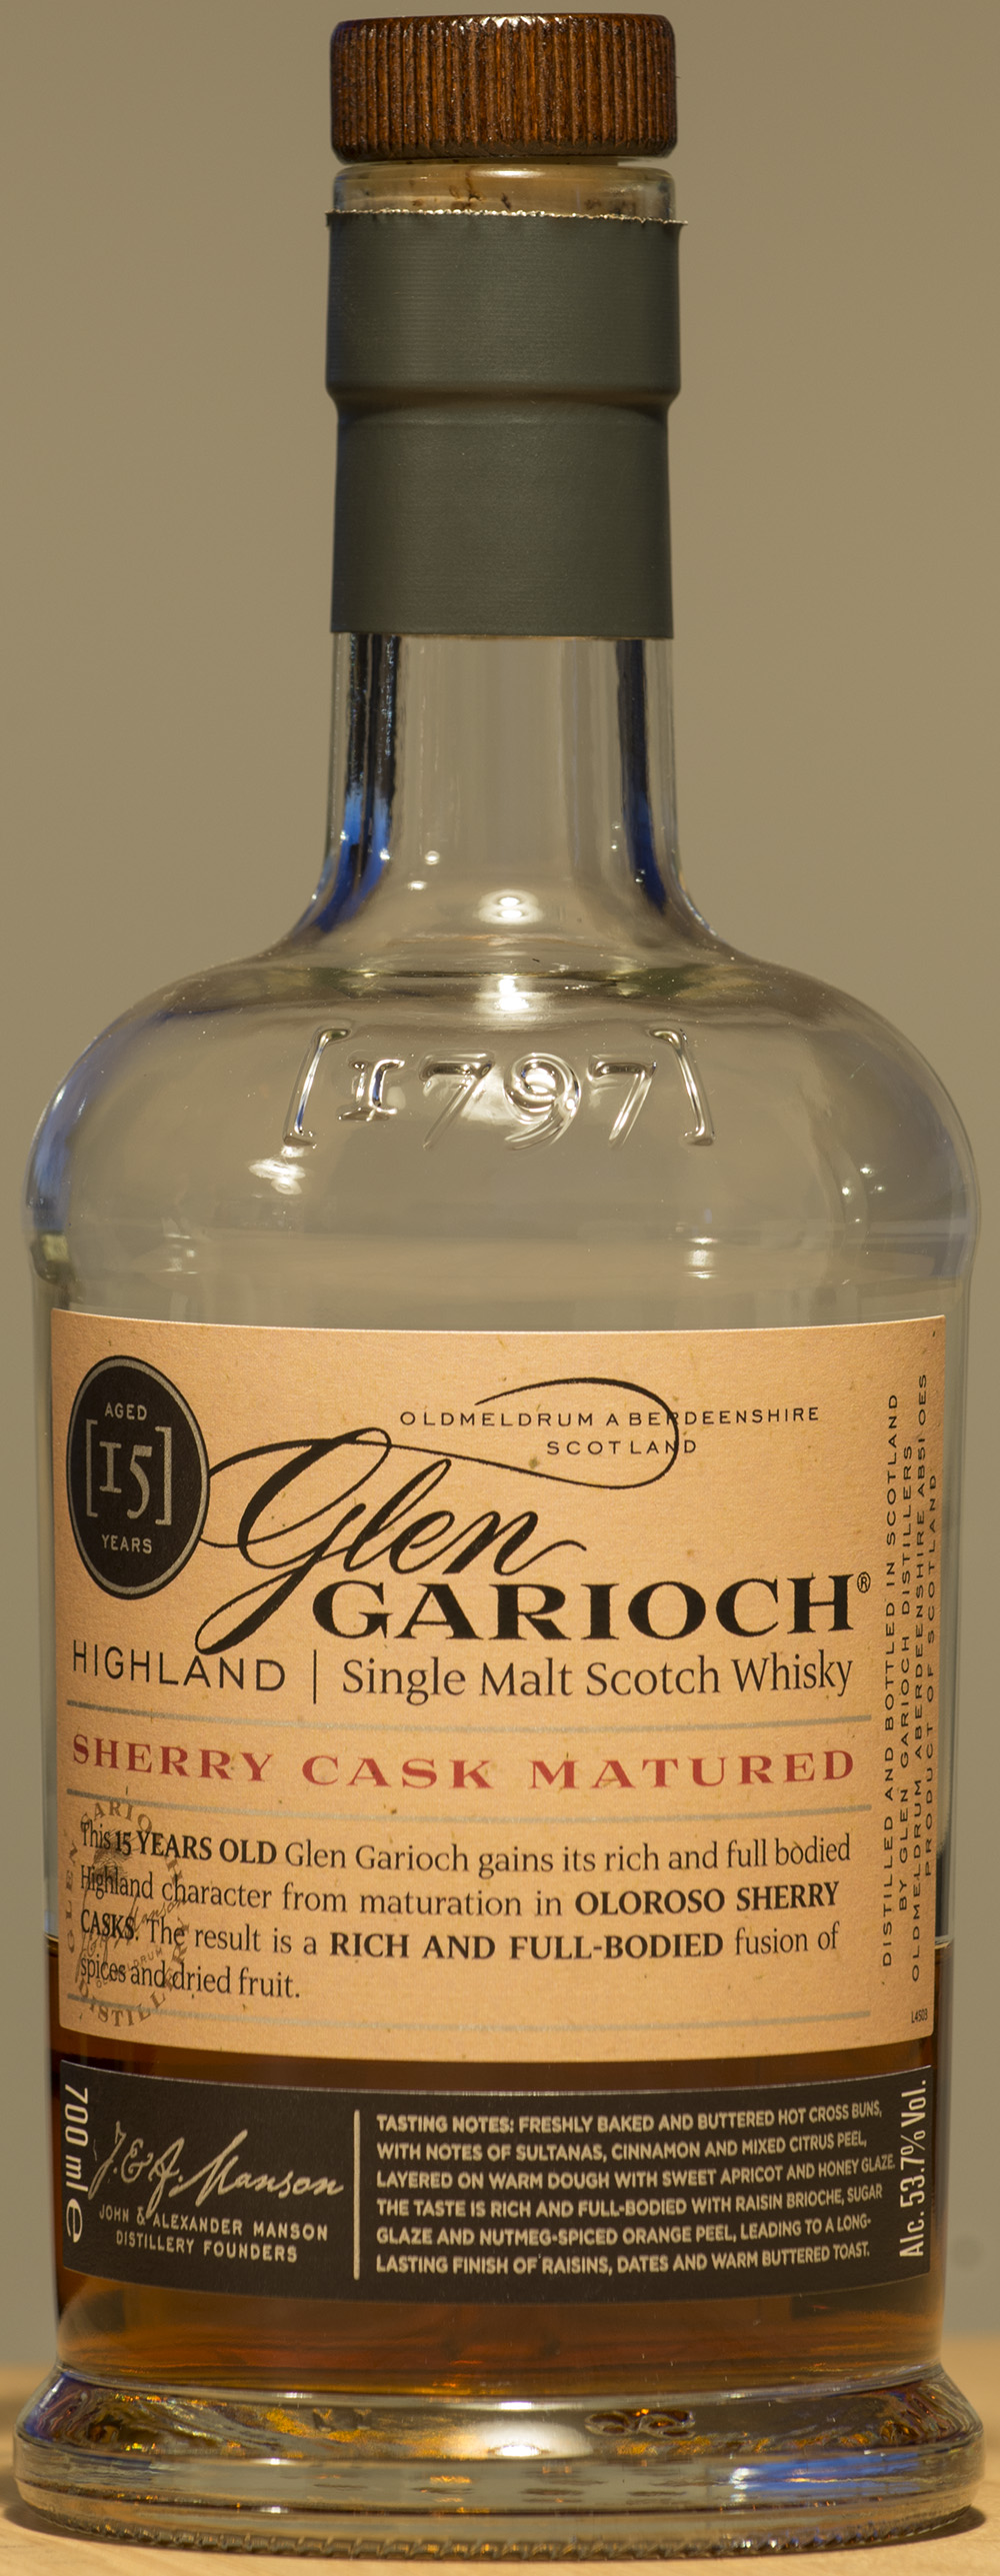 Billede: DSC_9085 - Glen Garioch 15 - bottle front.jpg